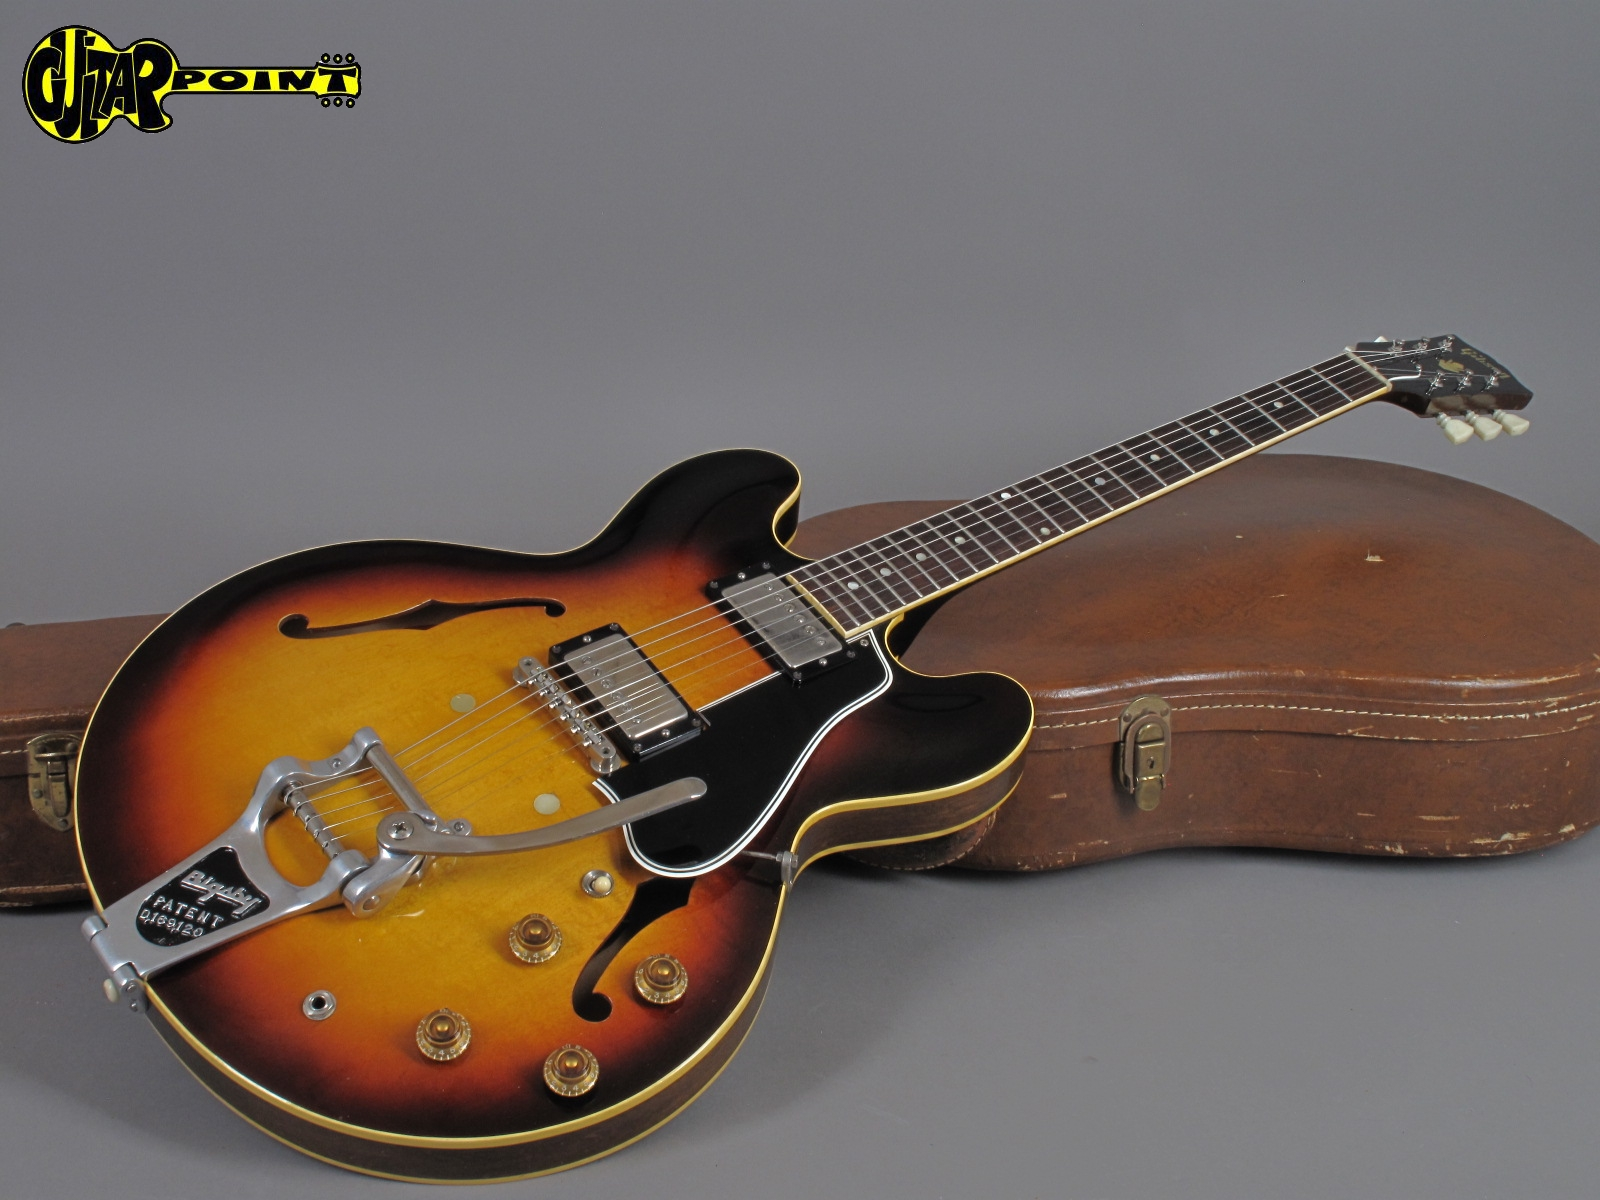 https://guitarpoint.de/app/uploads/products/1960-gibson-es-335-td-sunburst-exceptional-clean-2/Gibson60ES335SBA33507_161.jpg